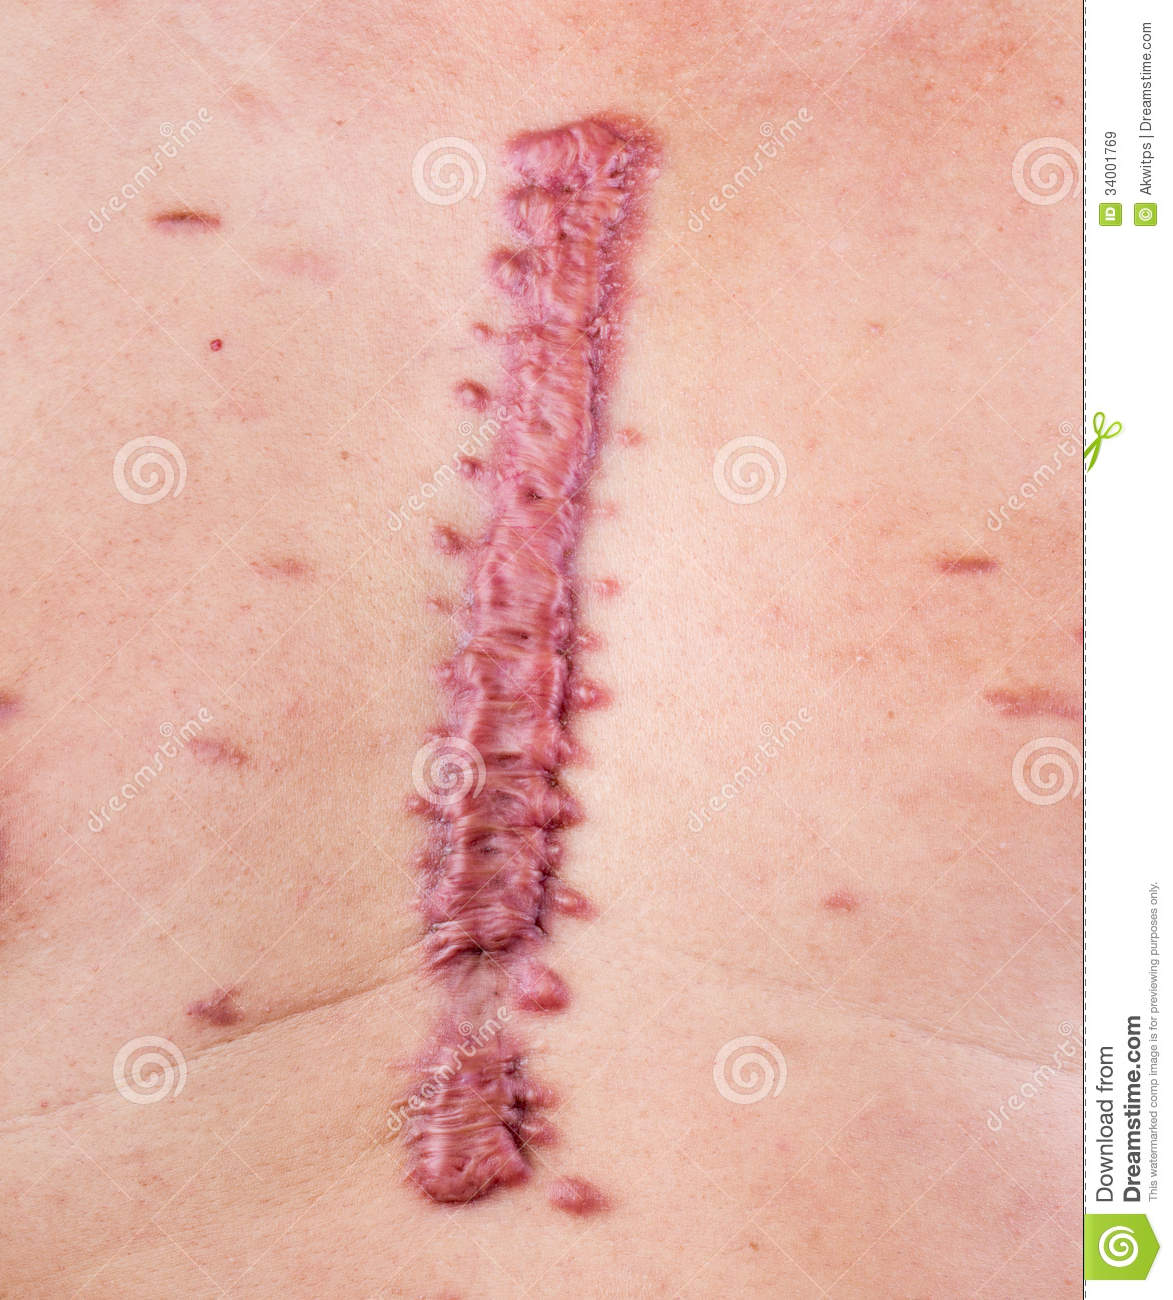 hypertrophic scar treatment steroid injection